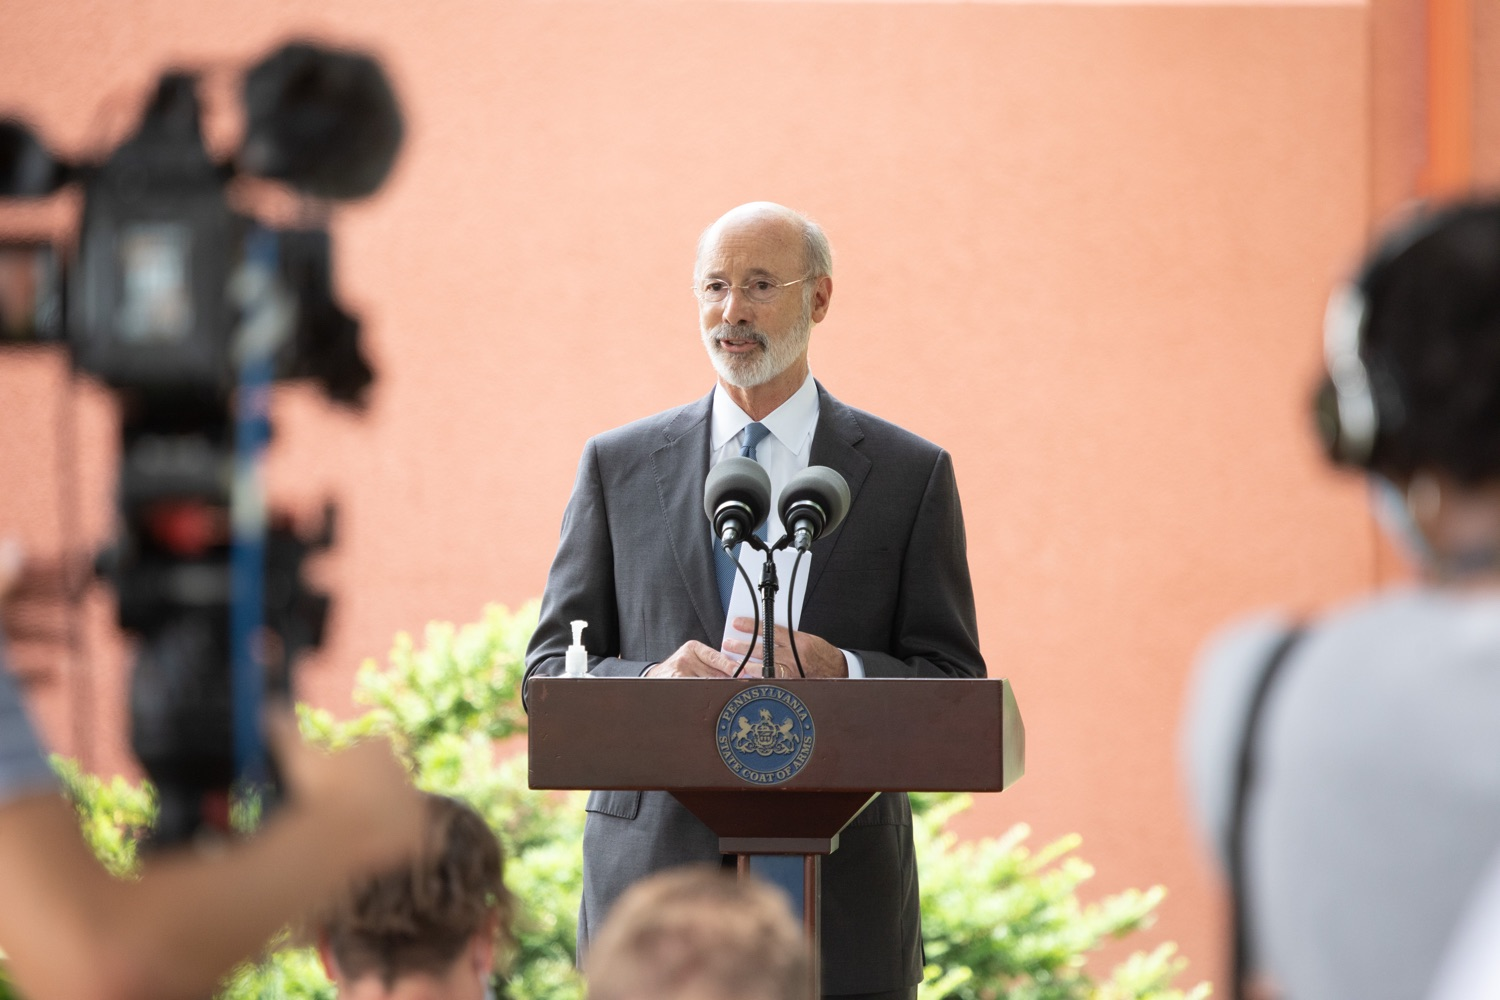 "<a href=""https://filesource.wostreaming.net/commonwealthofpa/photo/18178_GOV_Lancaster_Health_dz__08.jpg"" target=""_blank"">⇣ Download Photo<br></a>Pennsylvania Governor Tom Wolf speaking at the event.  Governor Tom Wolf today visited Lancaster Health Center, a federally qualified health center, to thank staff for their work to ensure the communitys most vulnerable receive care during COVID-19 and year-round.  Harrisburg, PA  July 24, 2020"